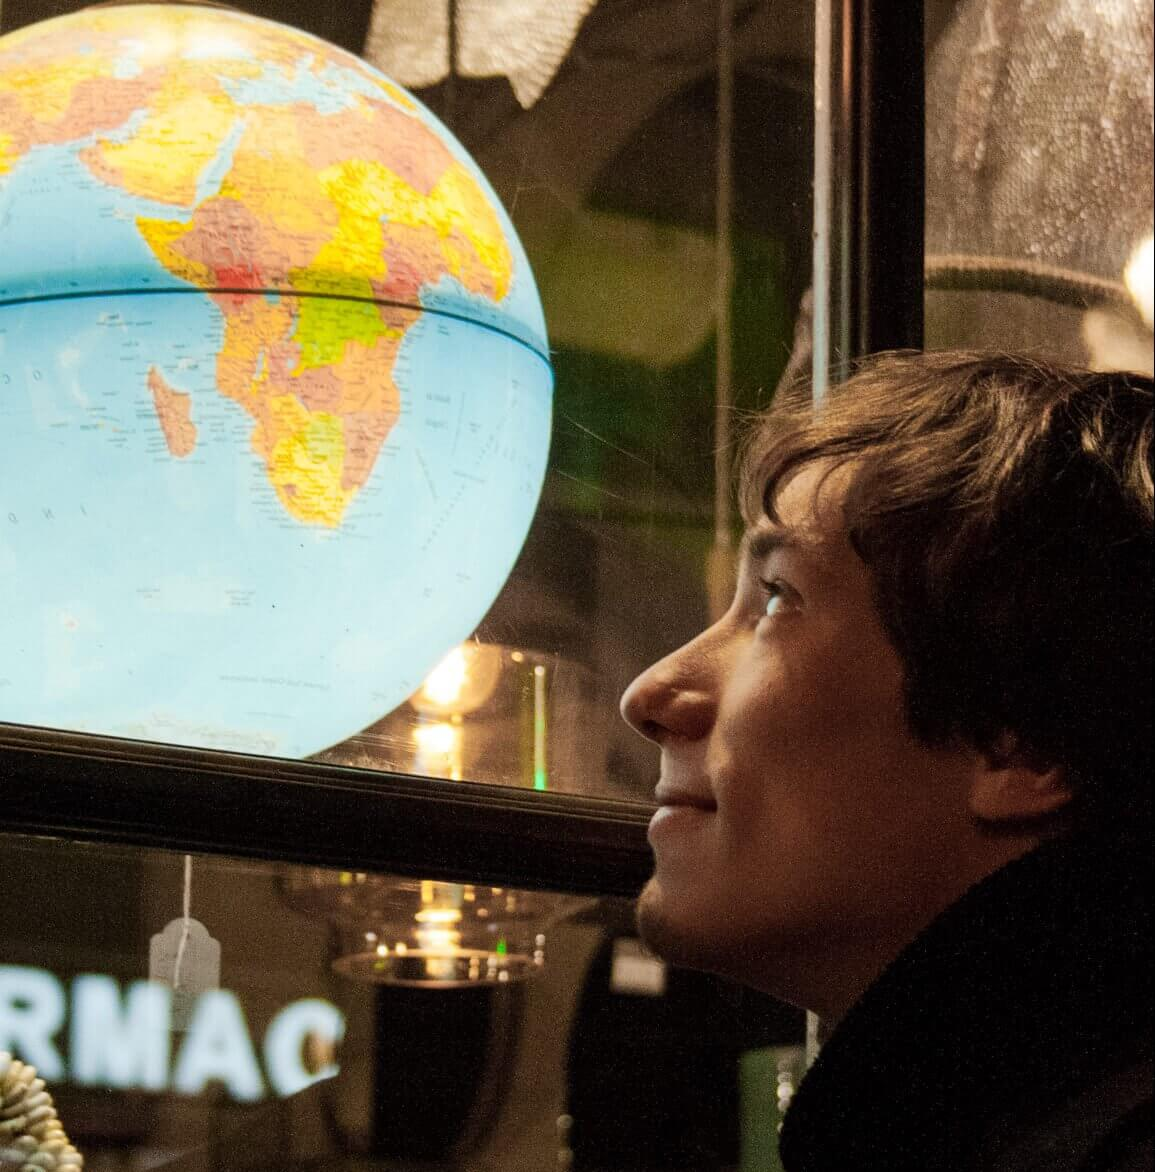 Photodyssee author Rico looking at a globe